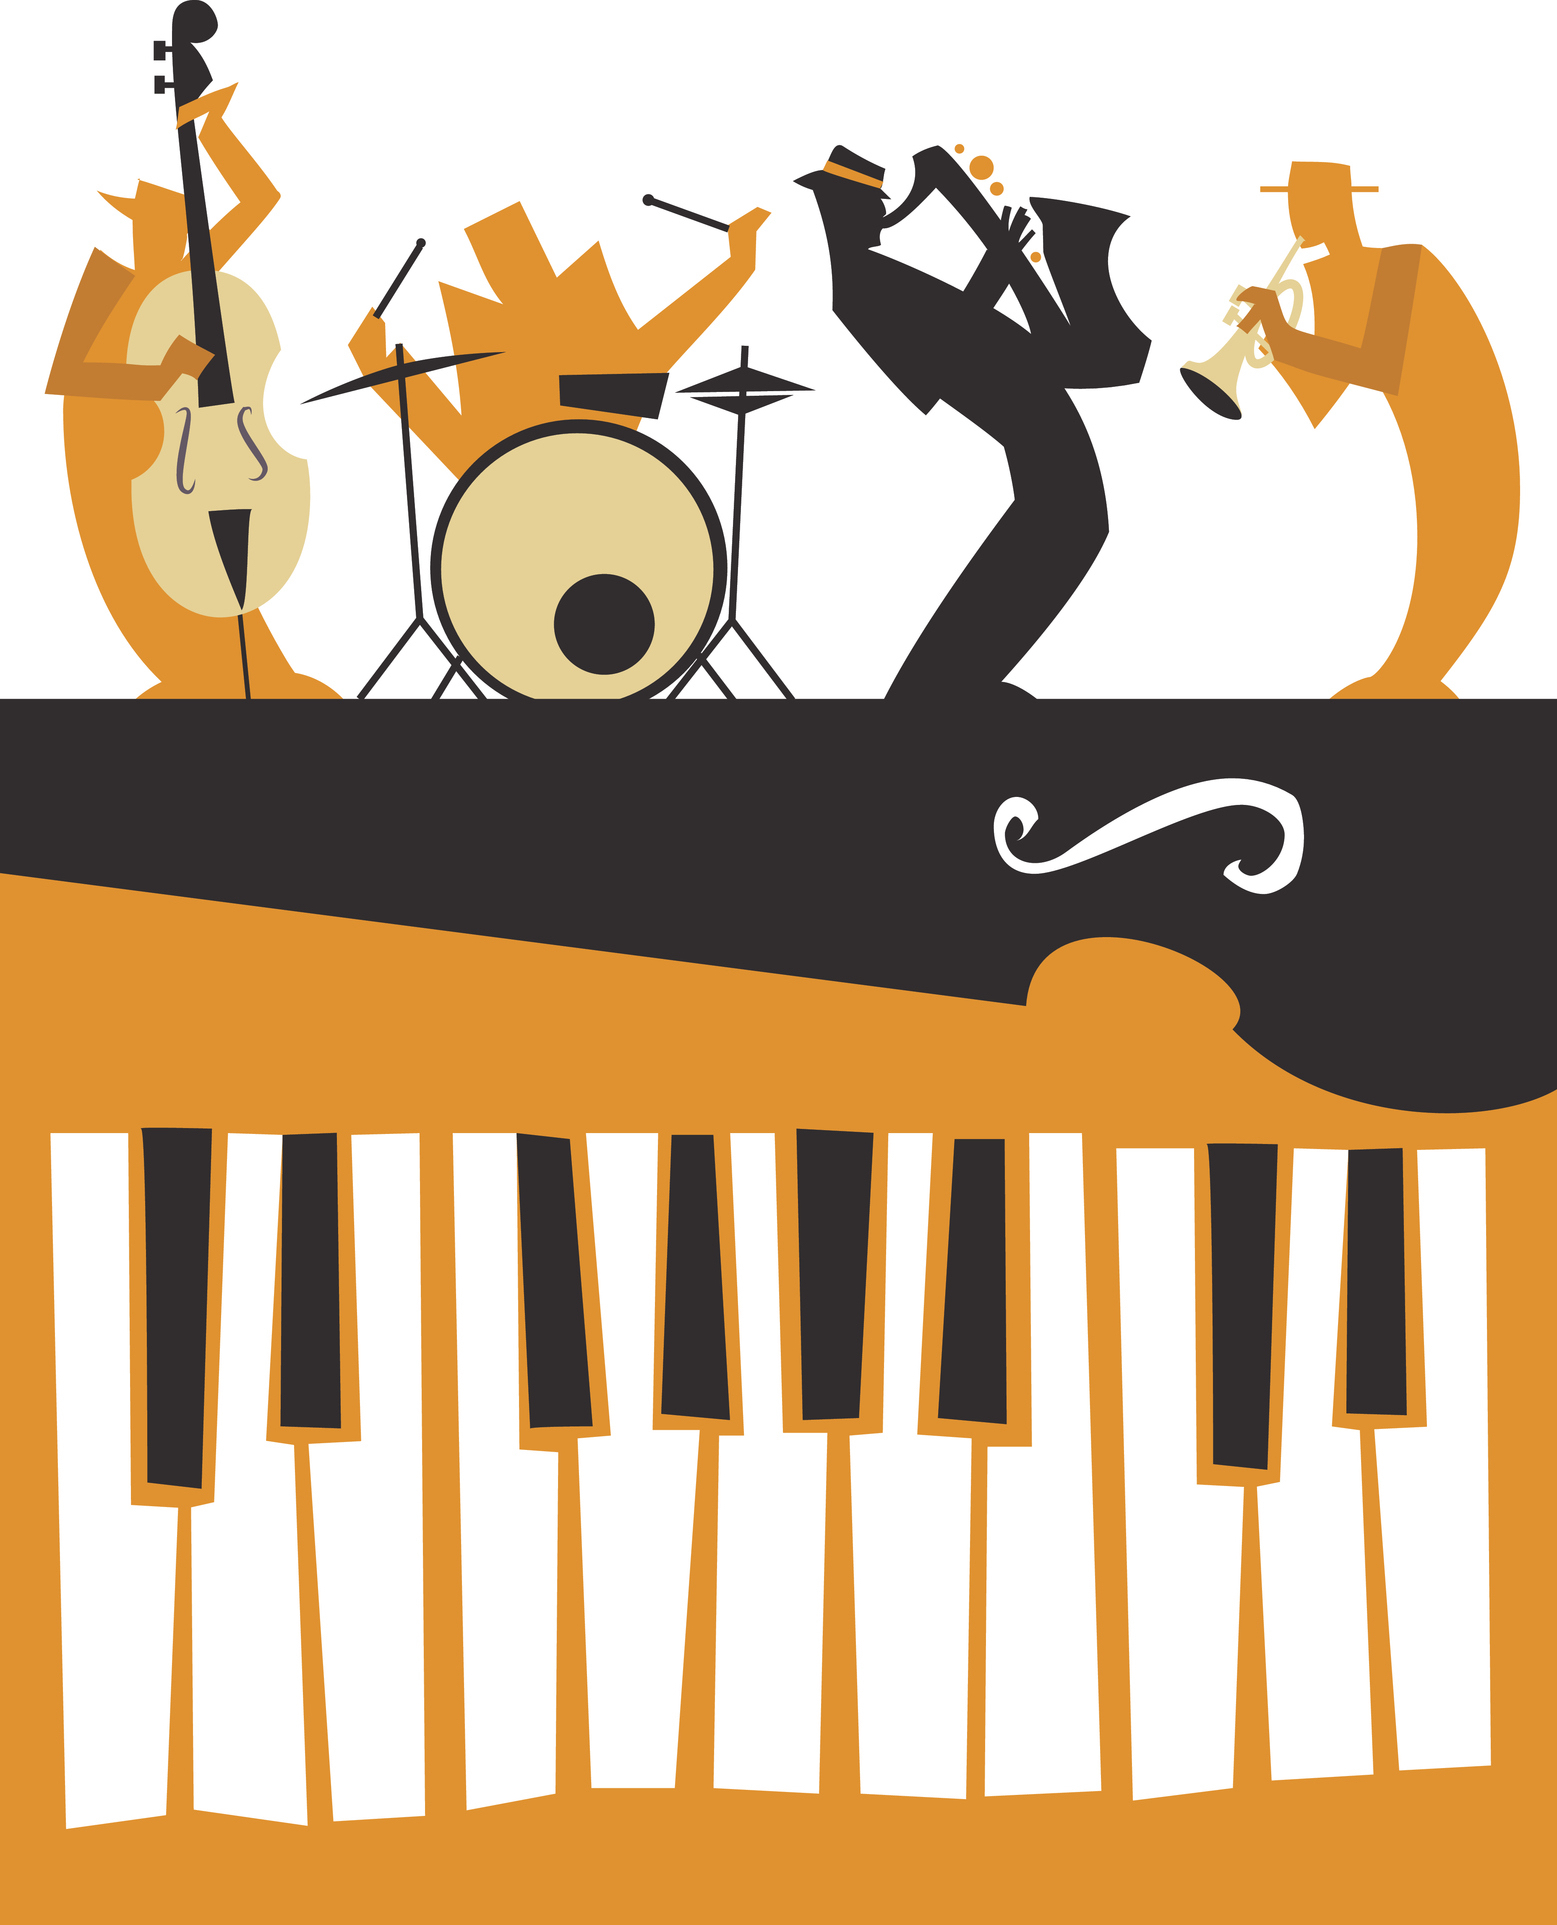 Jazz music holds an important role in the development of American culture